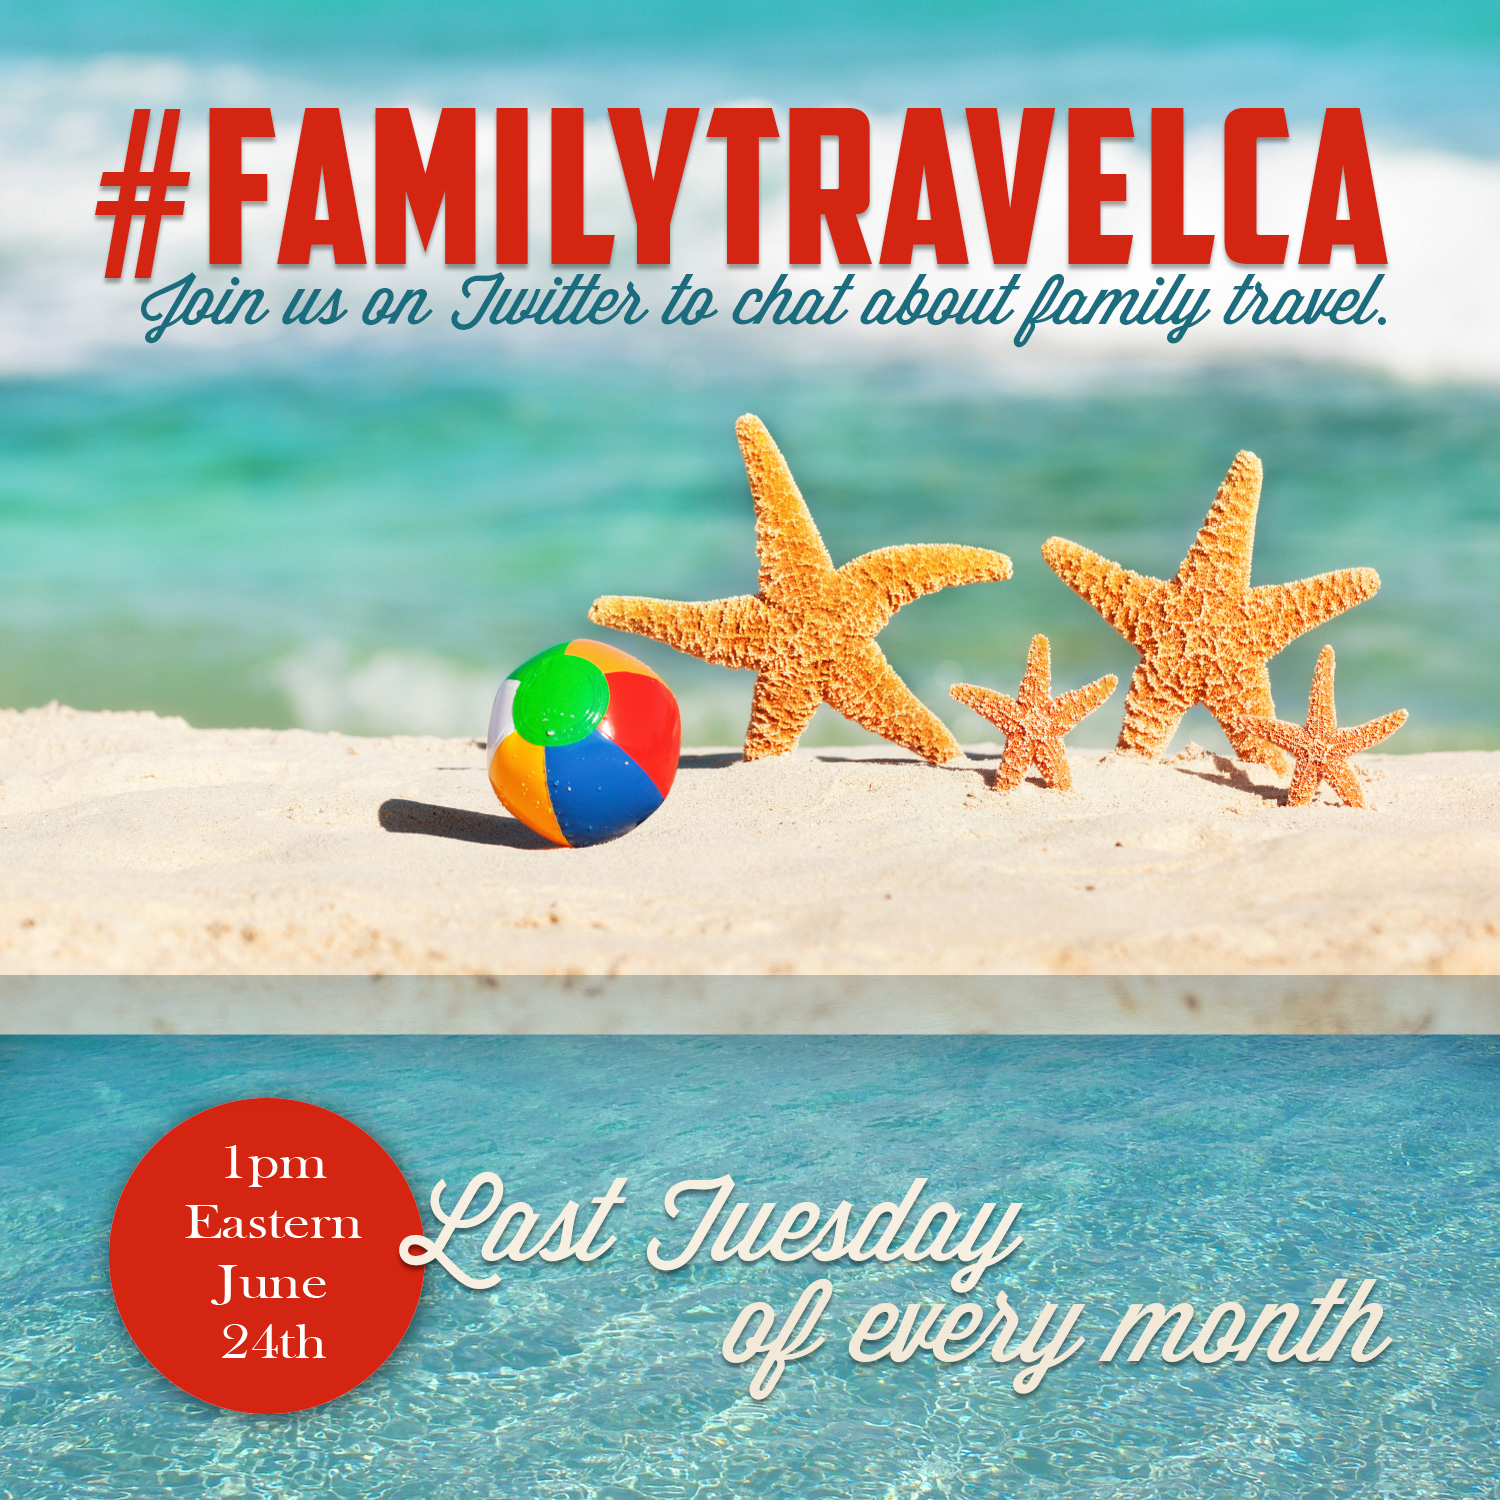 Join the #FamilyTravelCA June 24th 1pm to win a stay at The Four Seasons Toronto